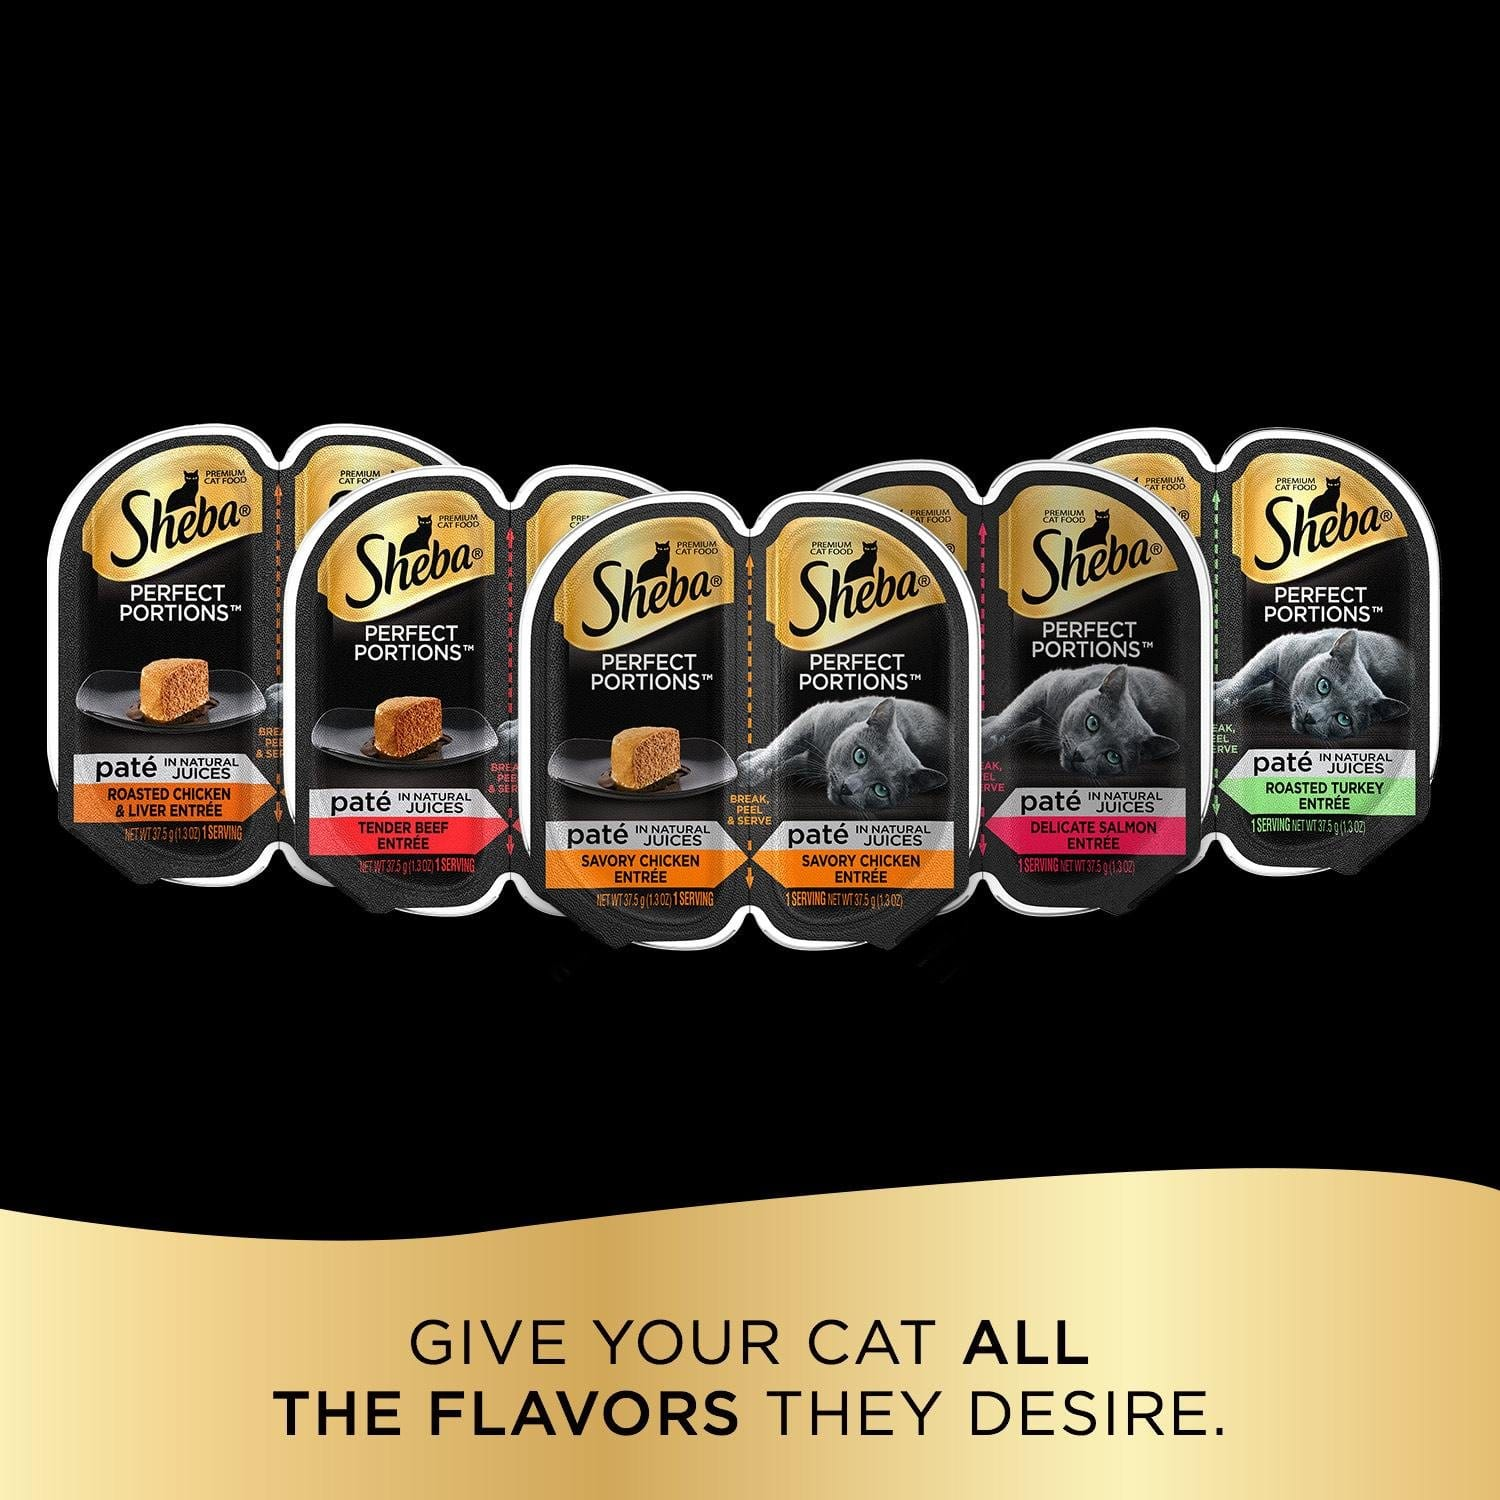 Select Amazon Accounts: Sheba Perfect Portions Wet Cat Food Trays 24-Pack 2.6oz (48 Servings) Various Flavors $7.78 & More FS w/ S&S